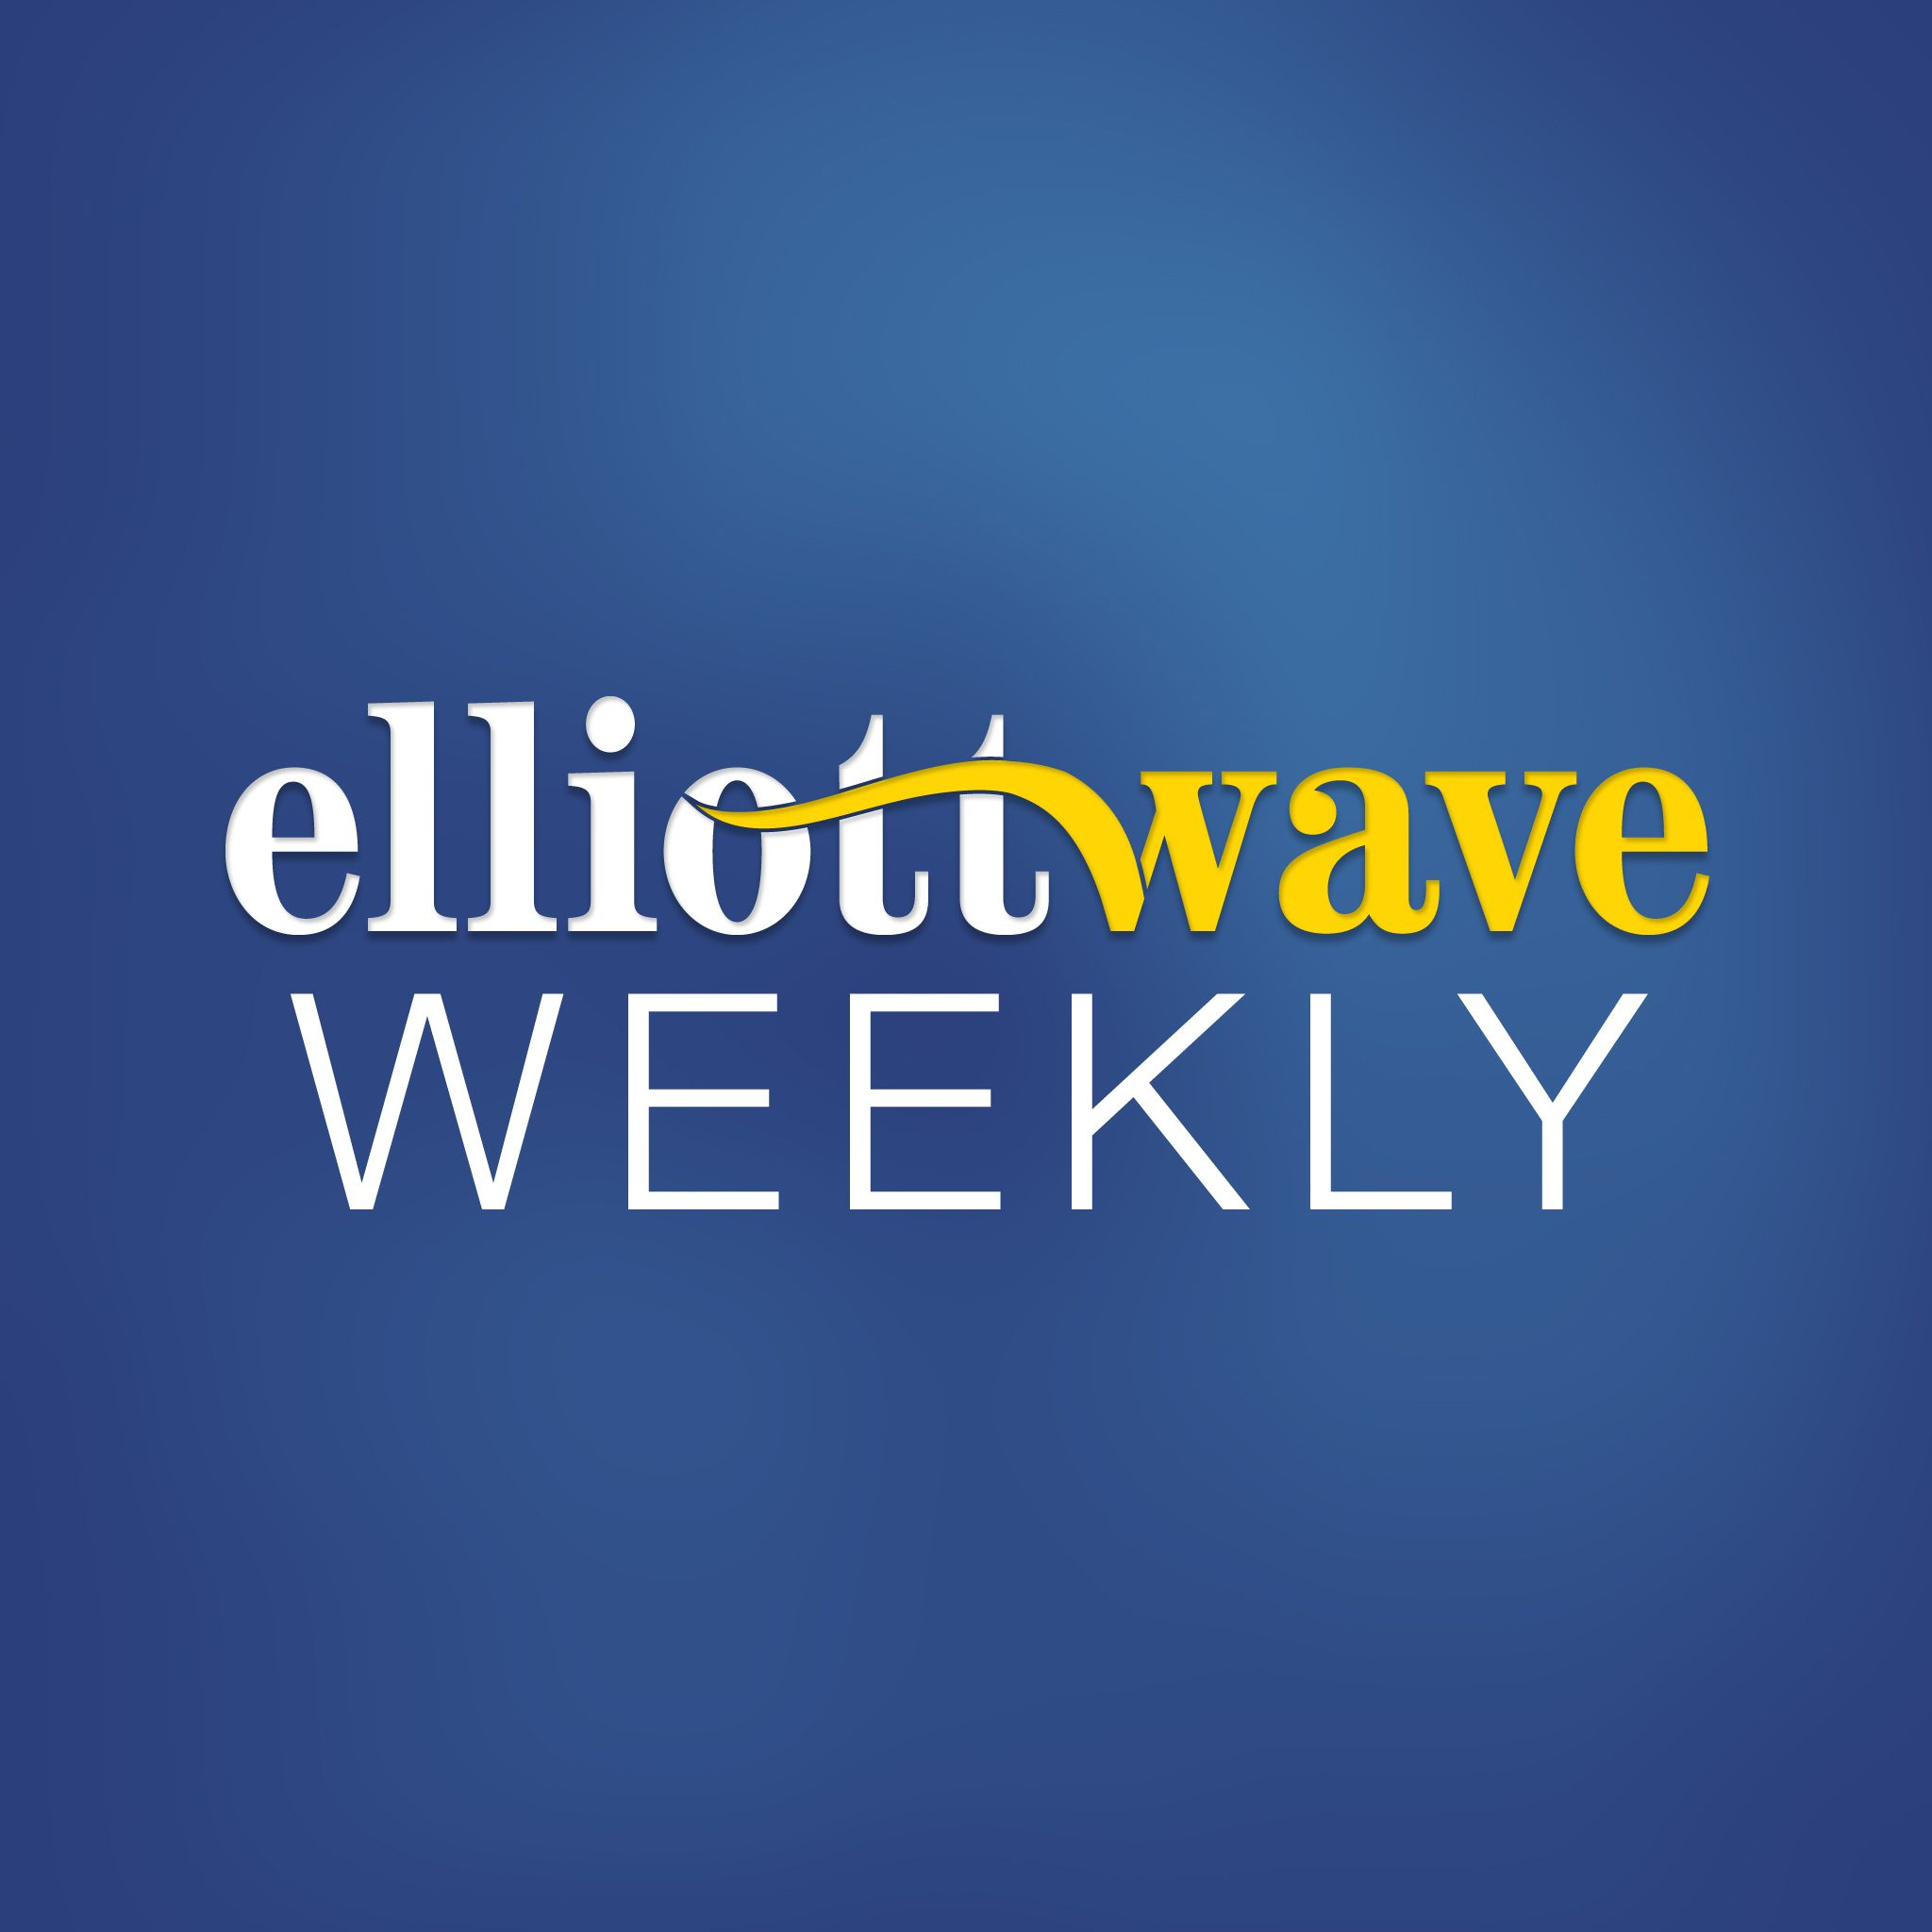 Elliott Wave Weekly